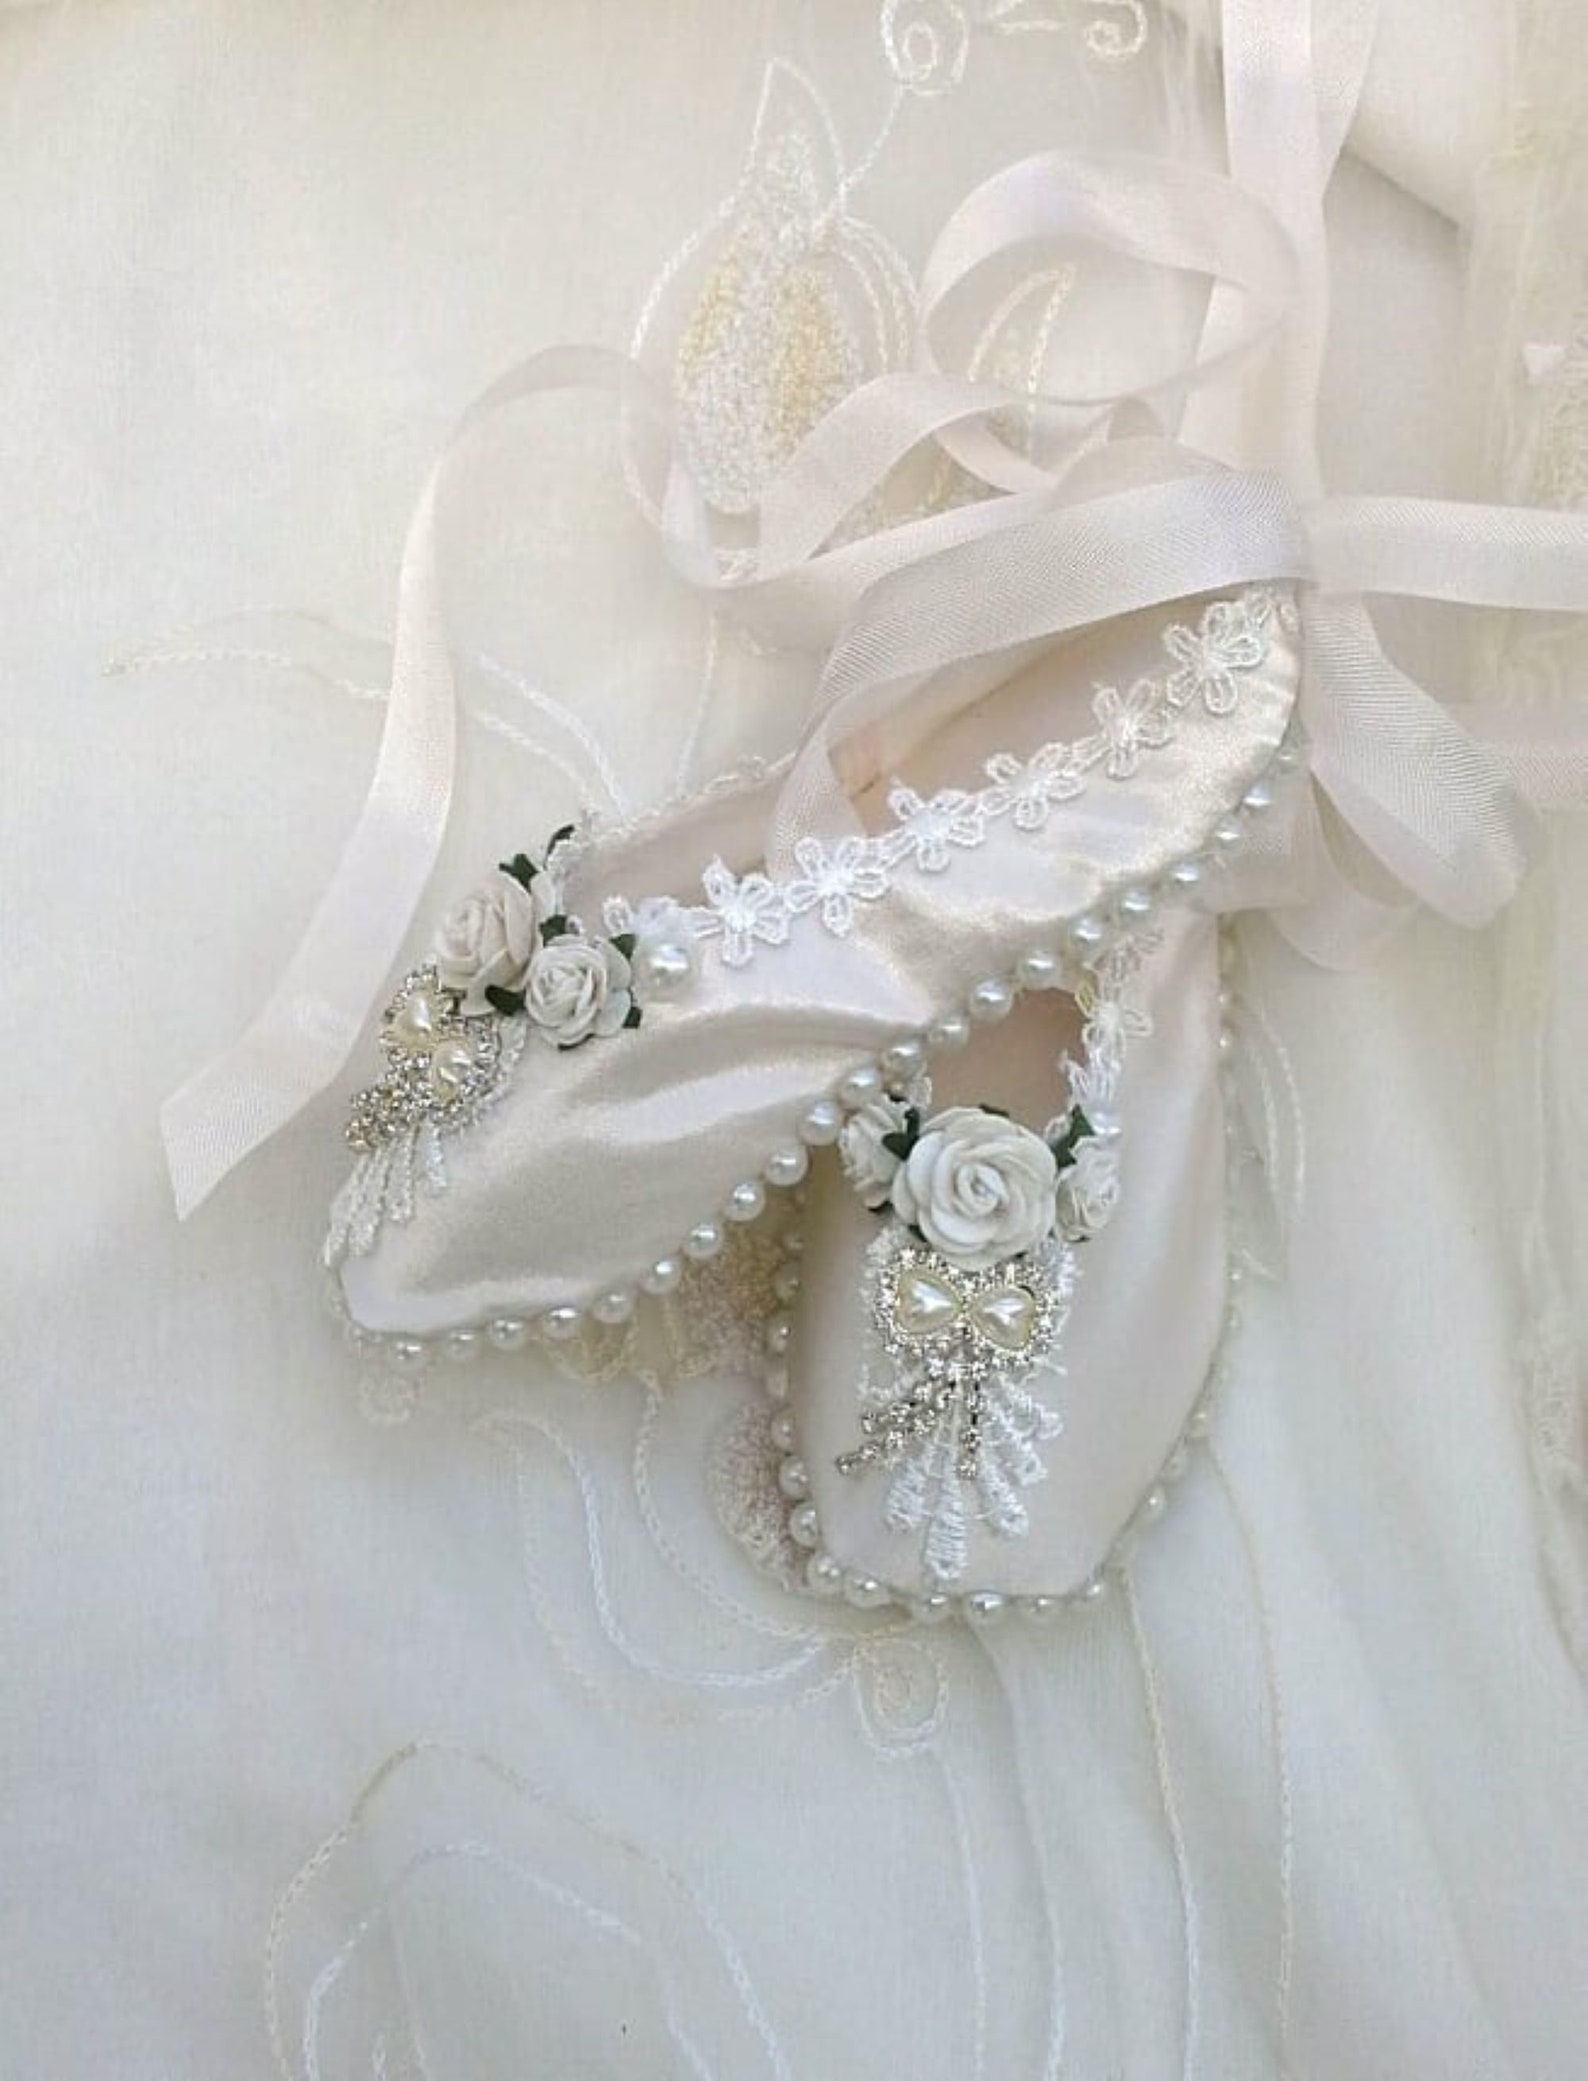 hand made ballet shoes, decorated ballet slippers, pointe shoes, decorative ballet shoes, shabby chic, ballet dancing shoes,gift